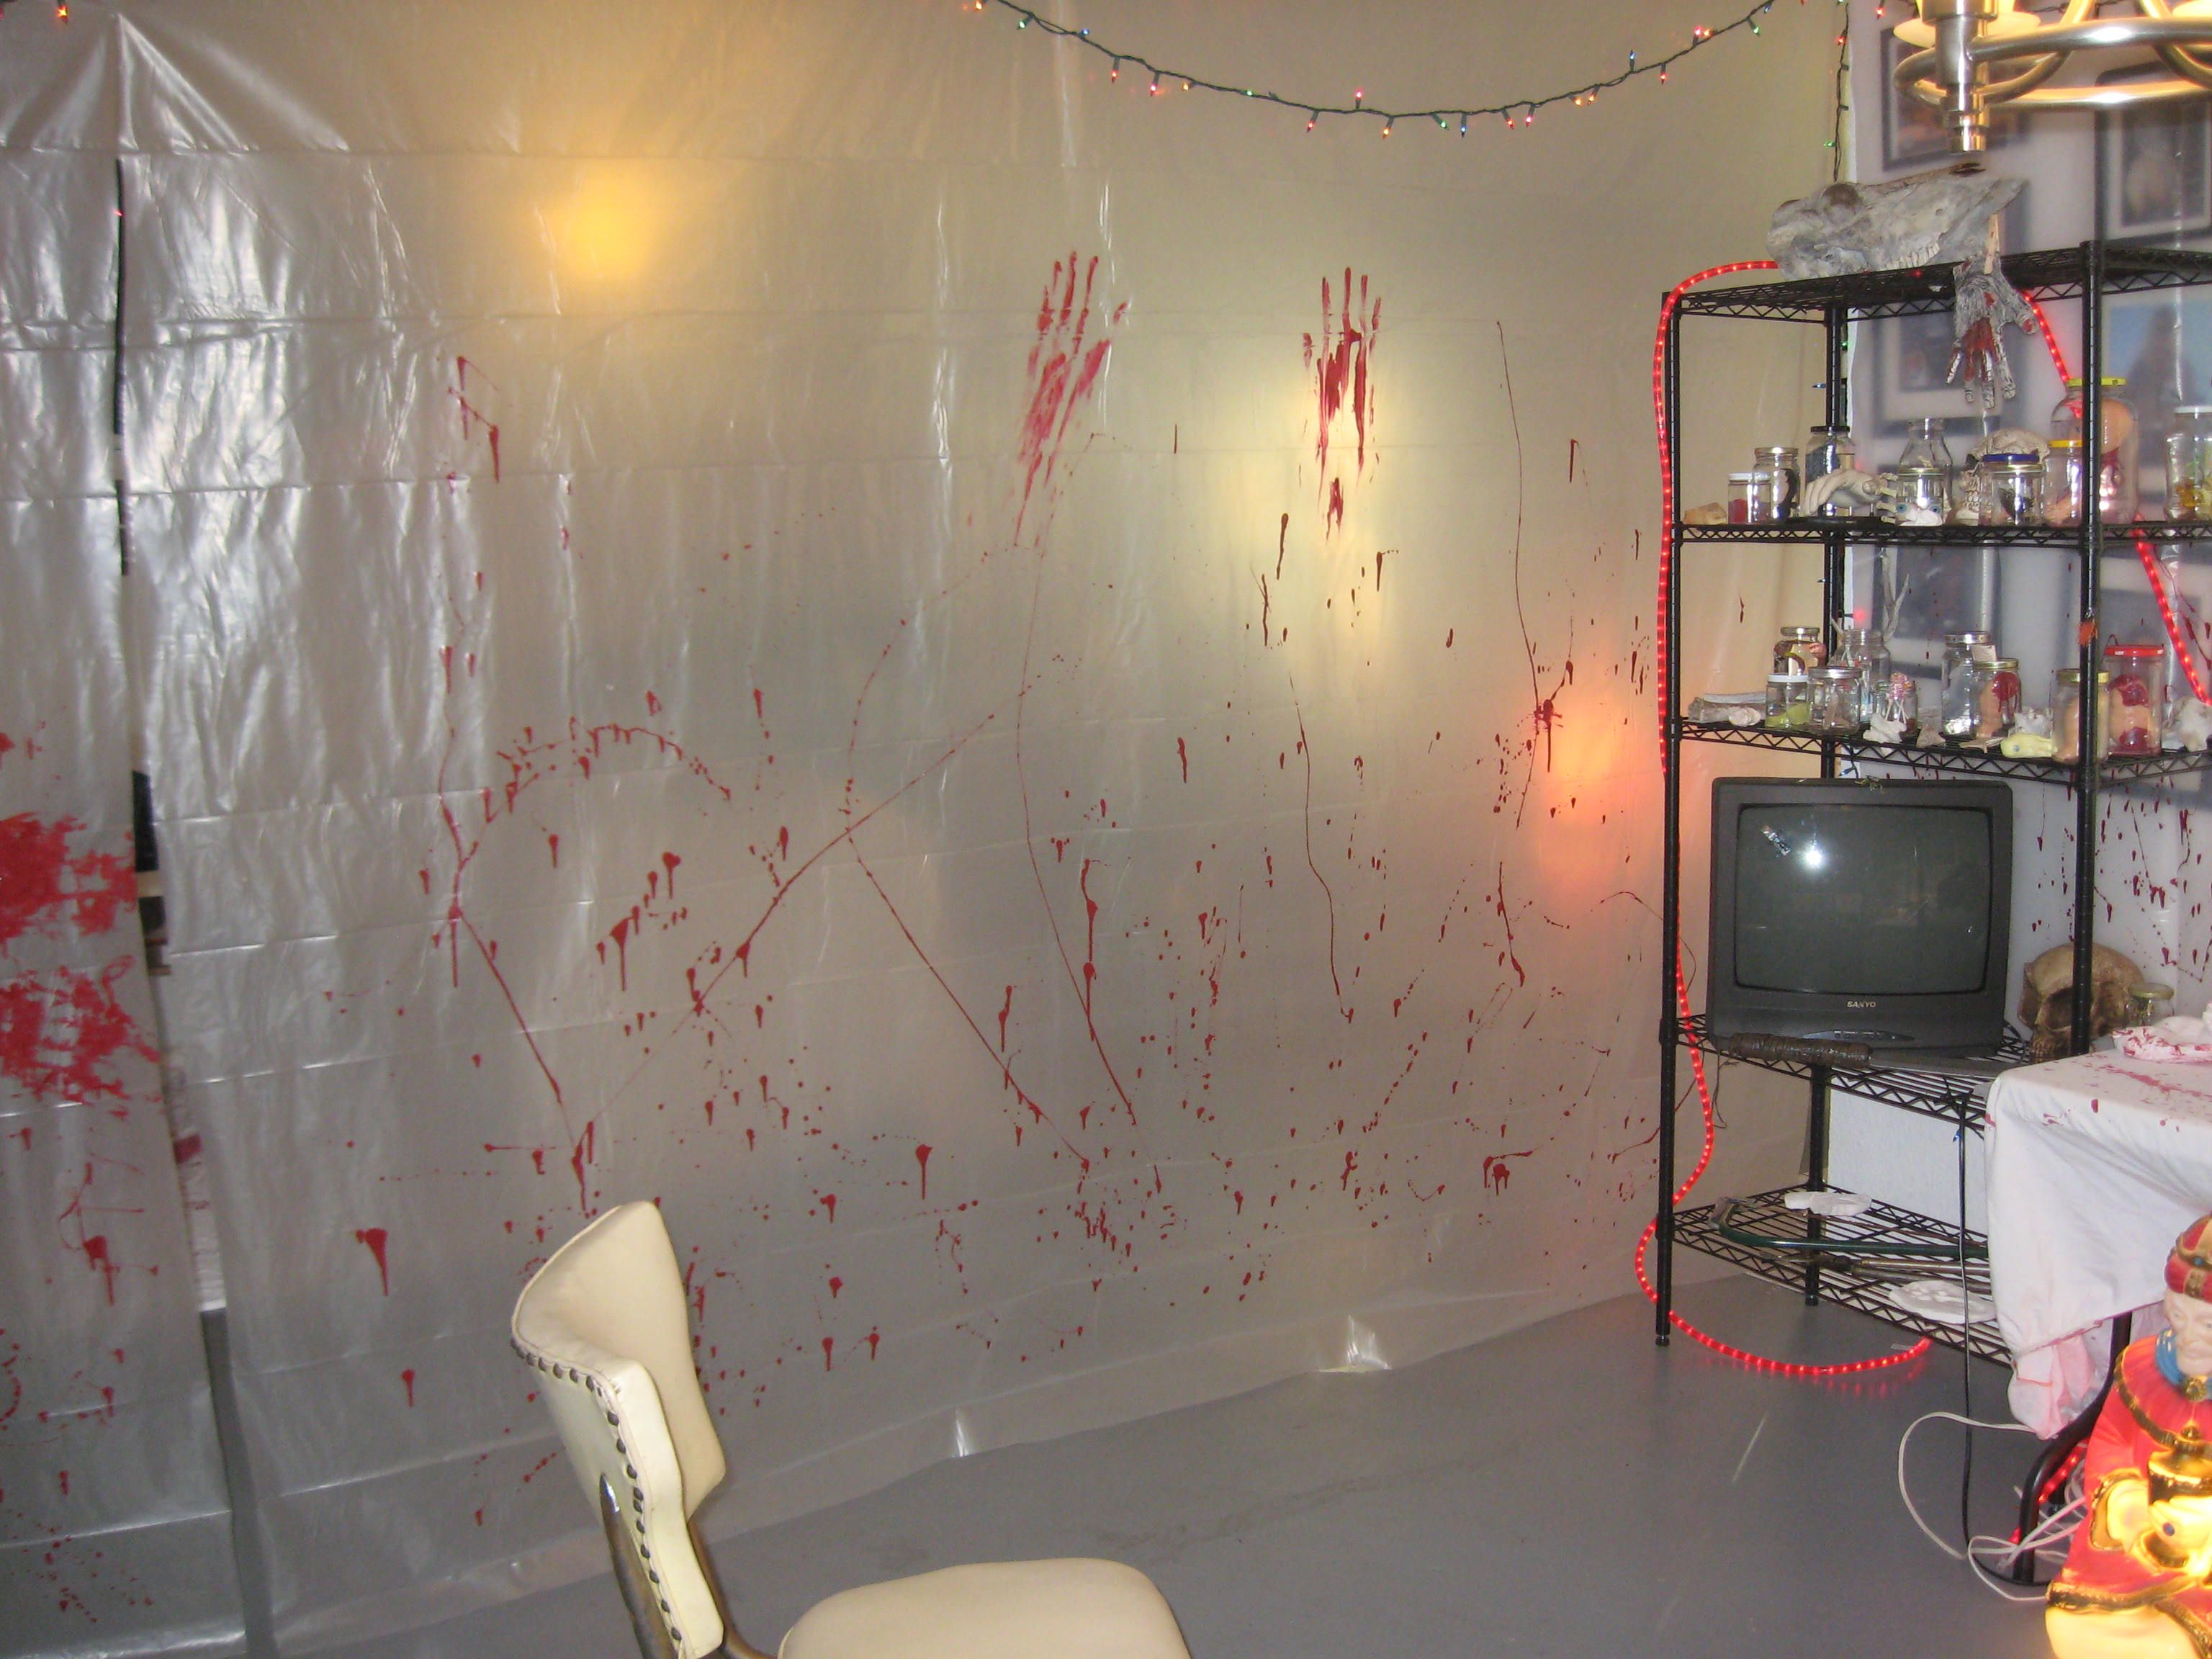 Hanging Creepy Blood Stained Plastic Sheeting Would Give The